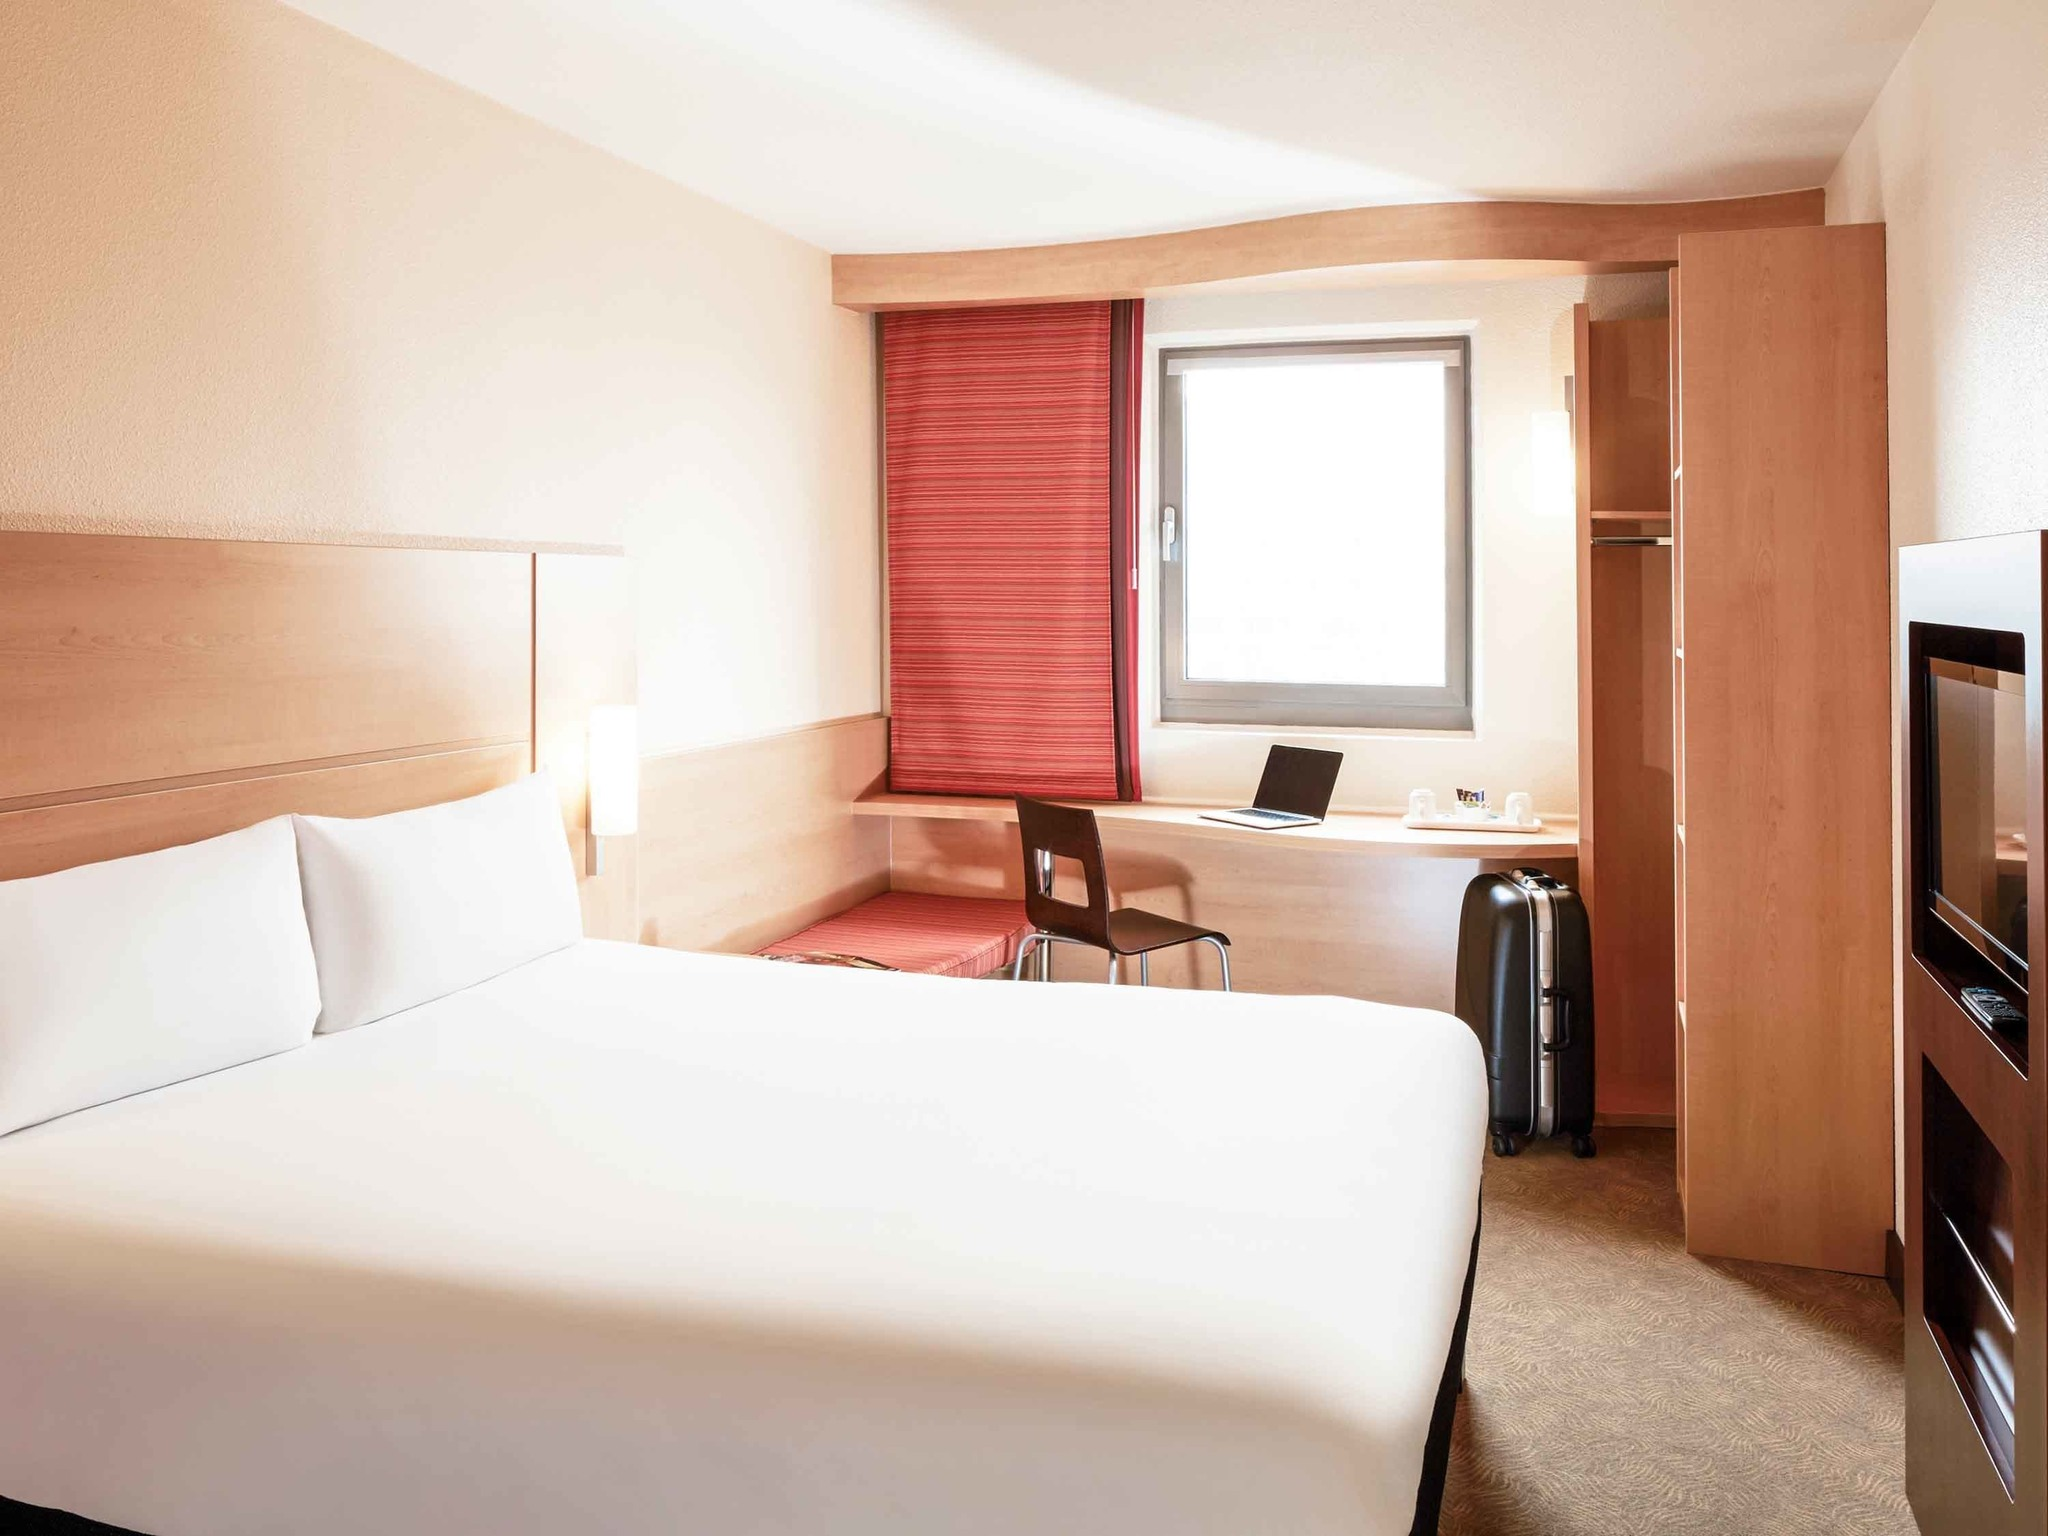 Hotel em londres ibis londres elstree borehamwood for Hotel adagio londres